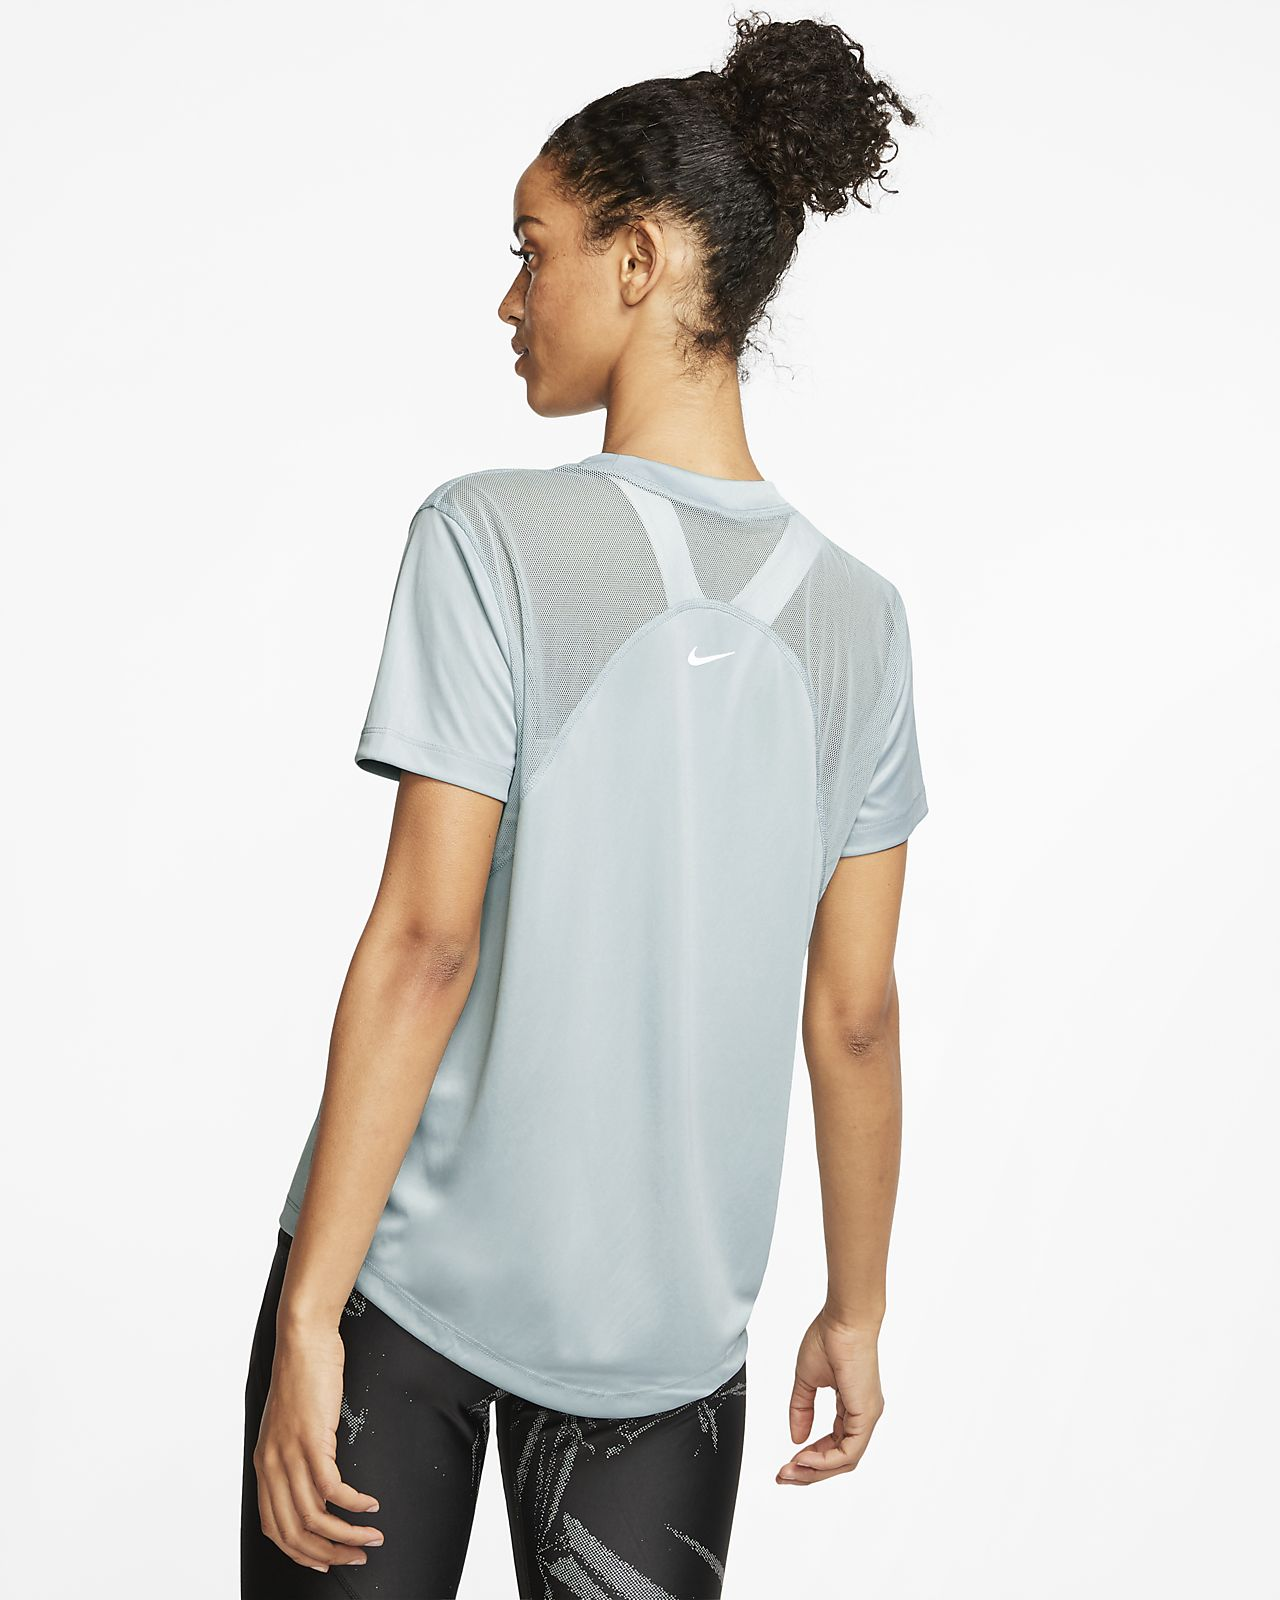 Nike Dri FIT Miler Women's Short Sleeve Metallic Running Top